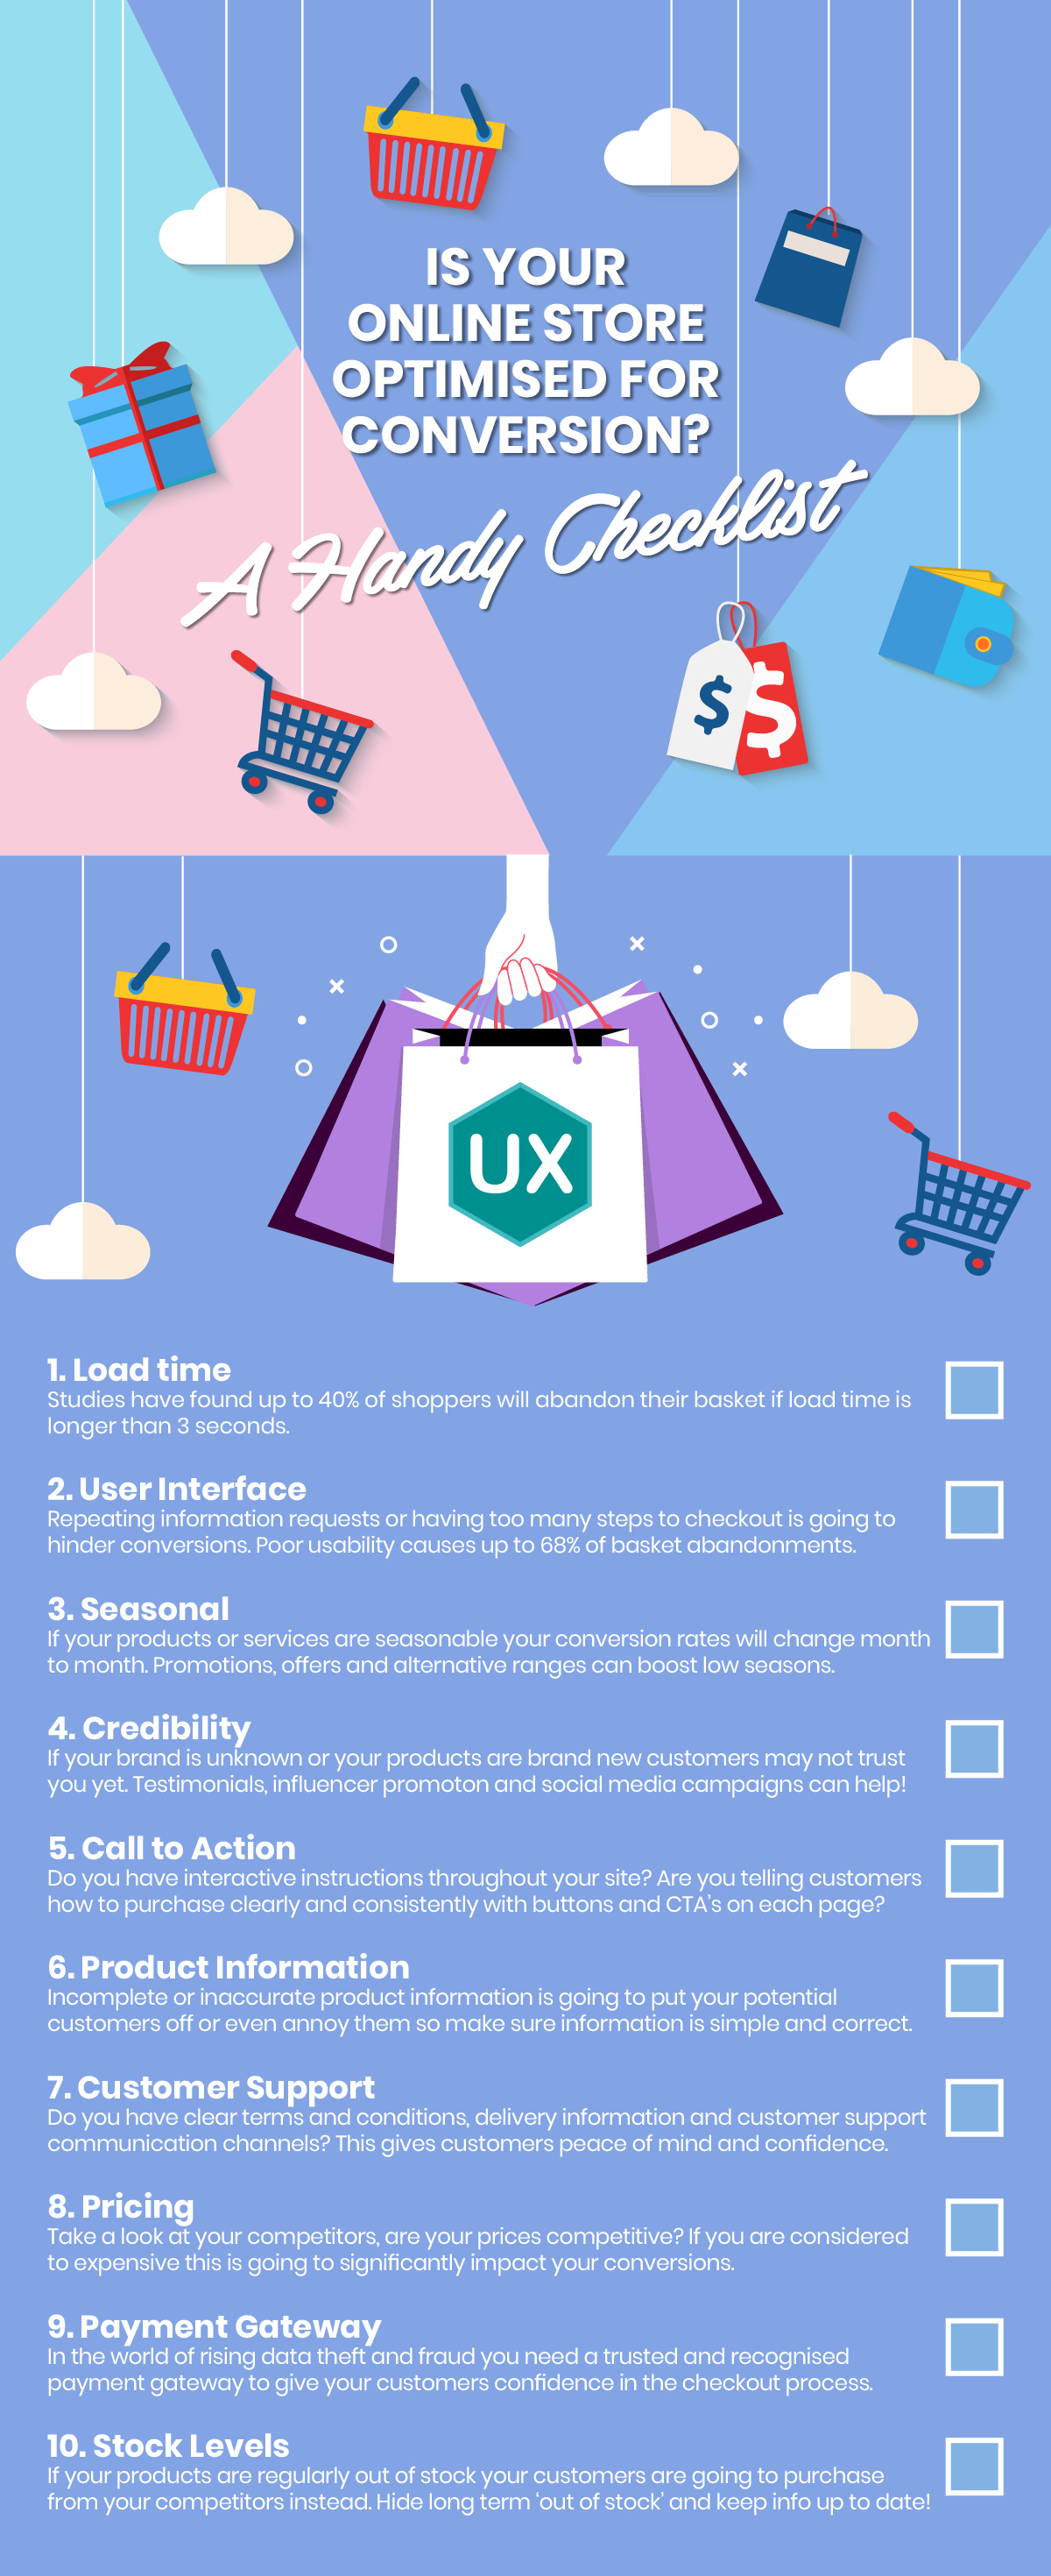 Is your online store optimised for conversion? A Handy Checklist